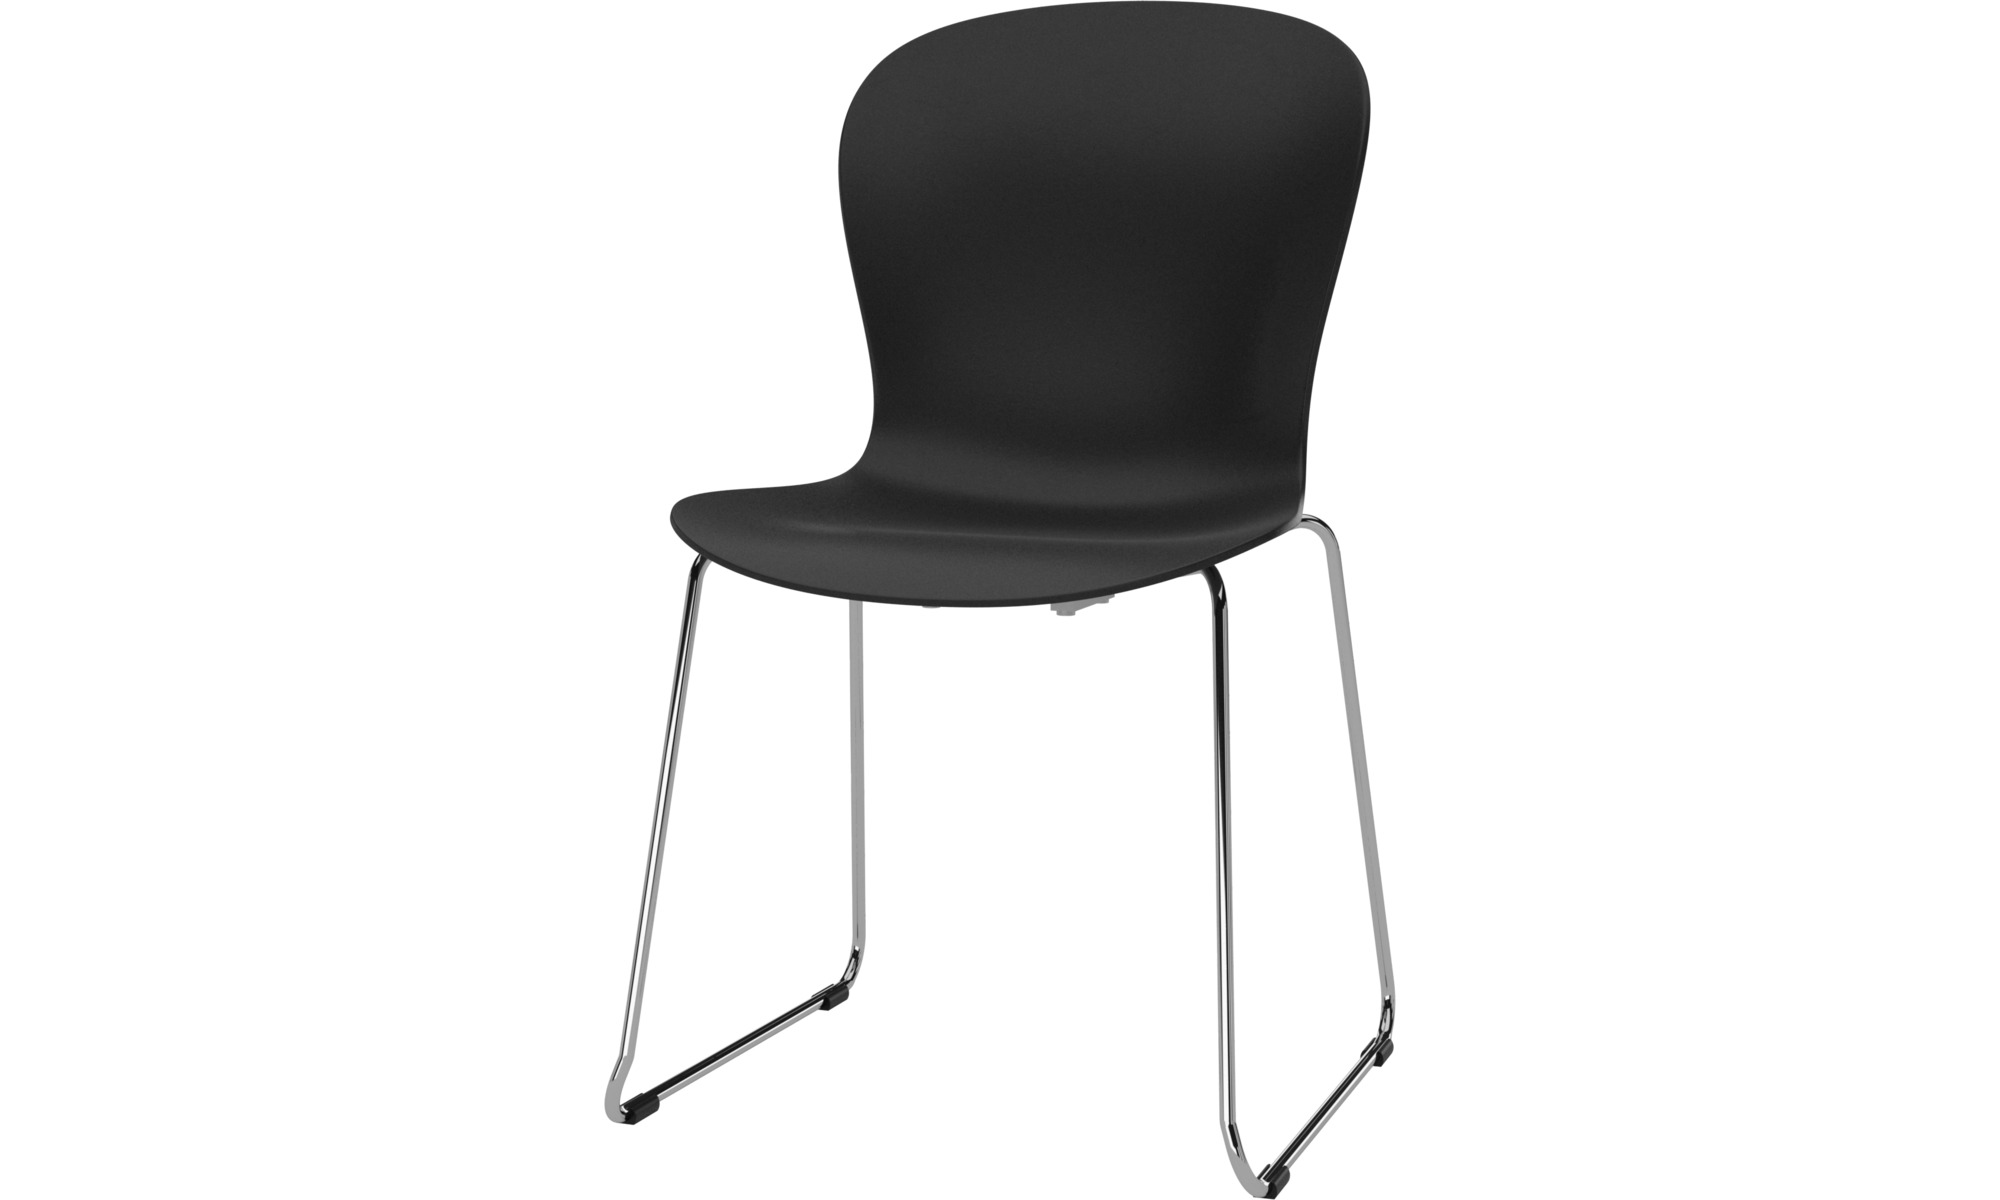 Dining chairs - Adelaide chair - Black - Plastic